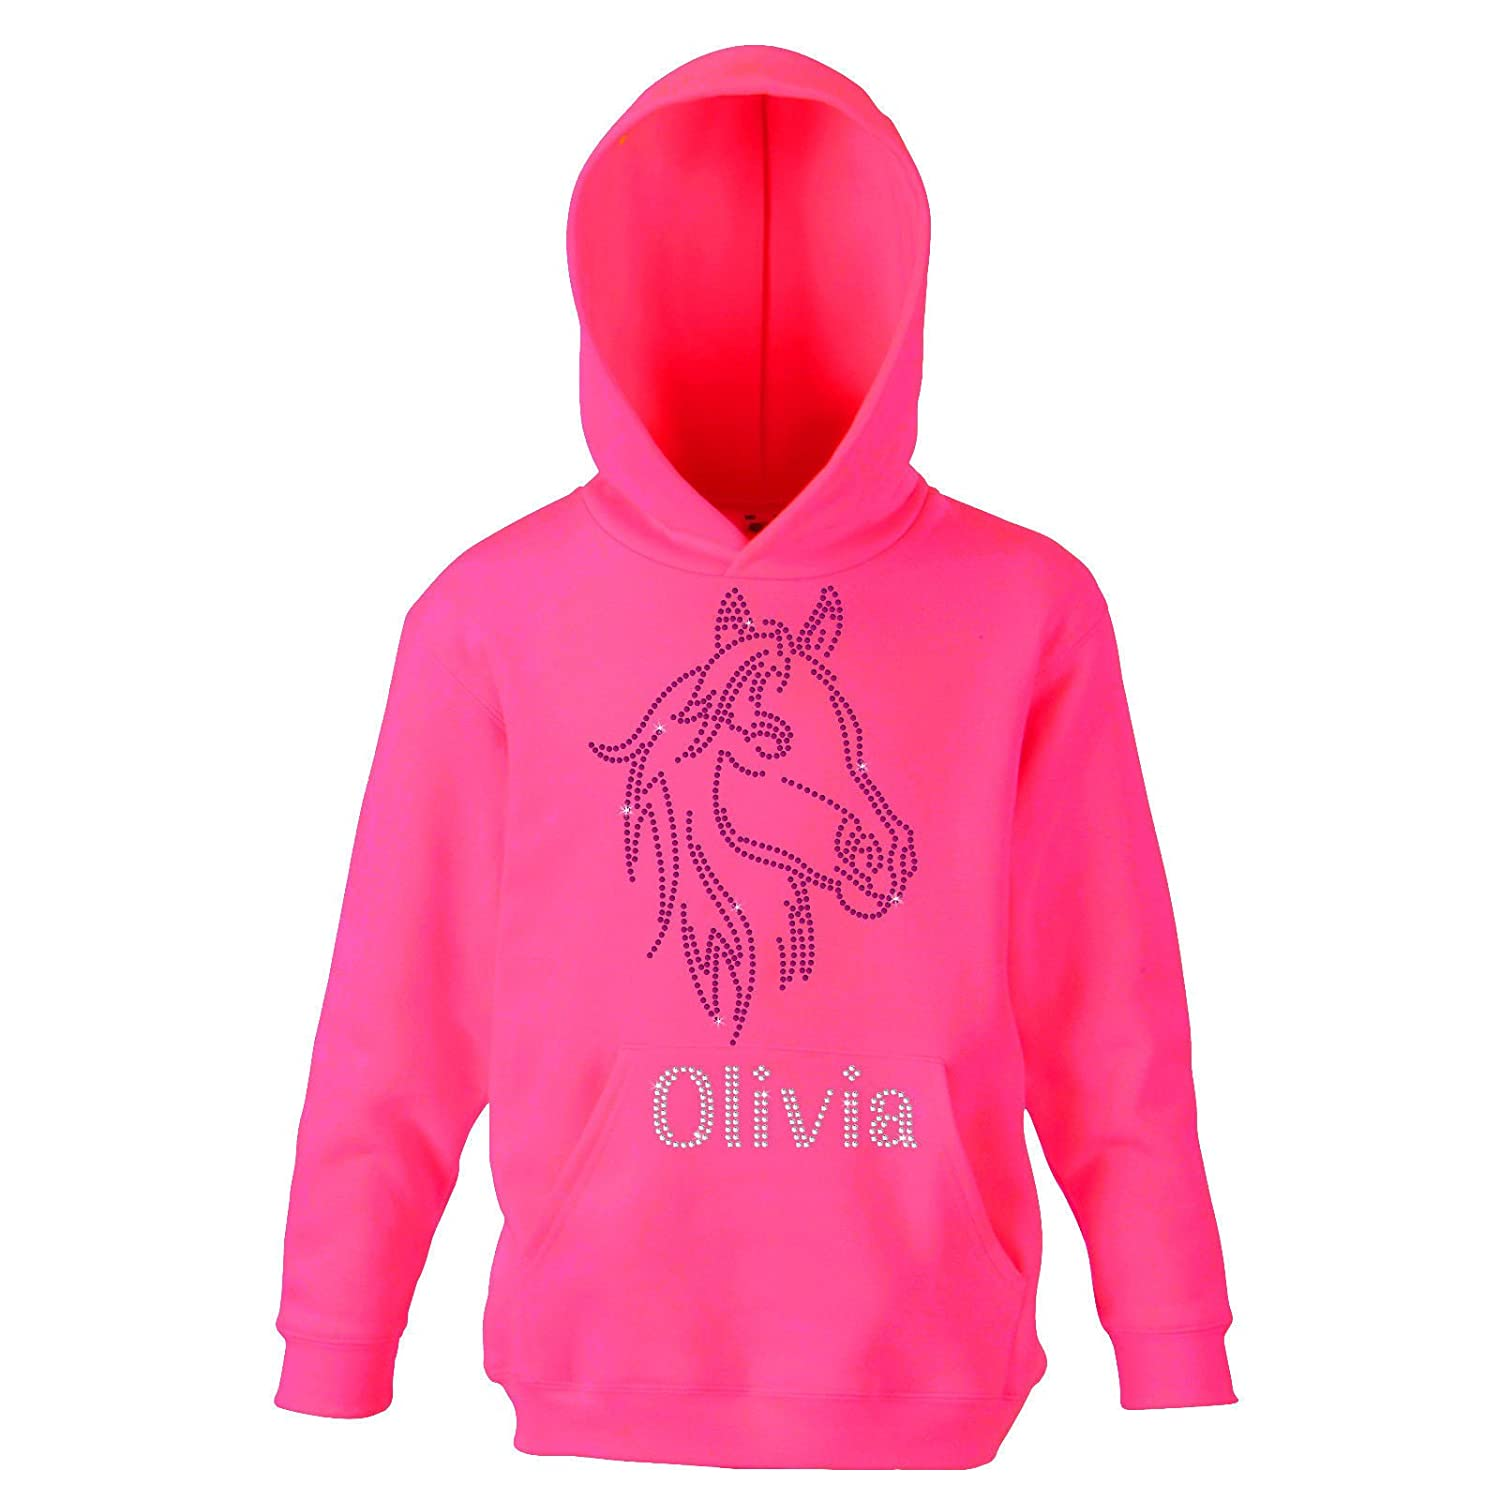 Fuchia PINK 5-6 Years Girl's Horse Face riding Personalised Hoodie Crystal Dance Jumper Leotard kids Hoody(K) By Varsany